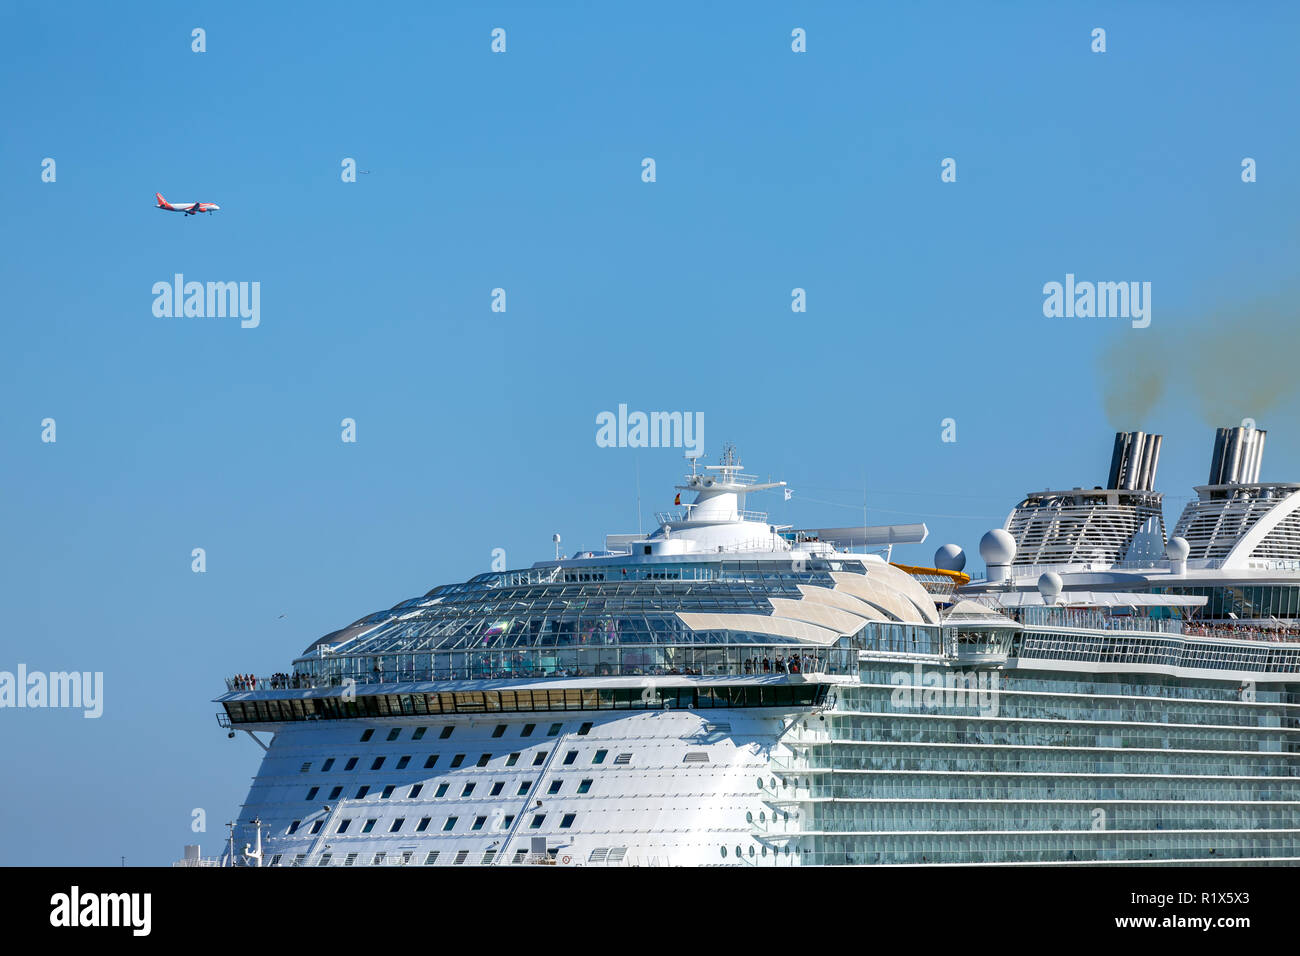 Spain, Barcelona, July 8th -2018, a luxury cruiser ship and a landing aircraft at Barcelona Harbor - Stock Image